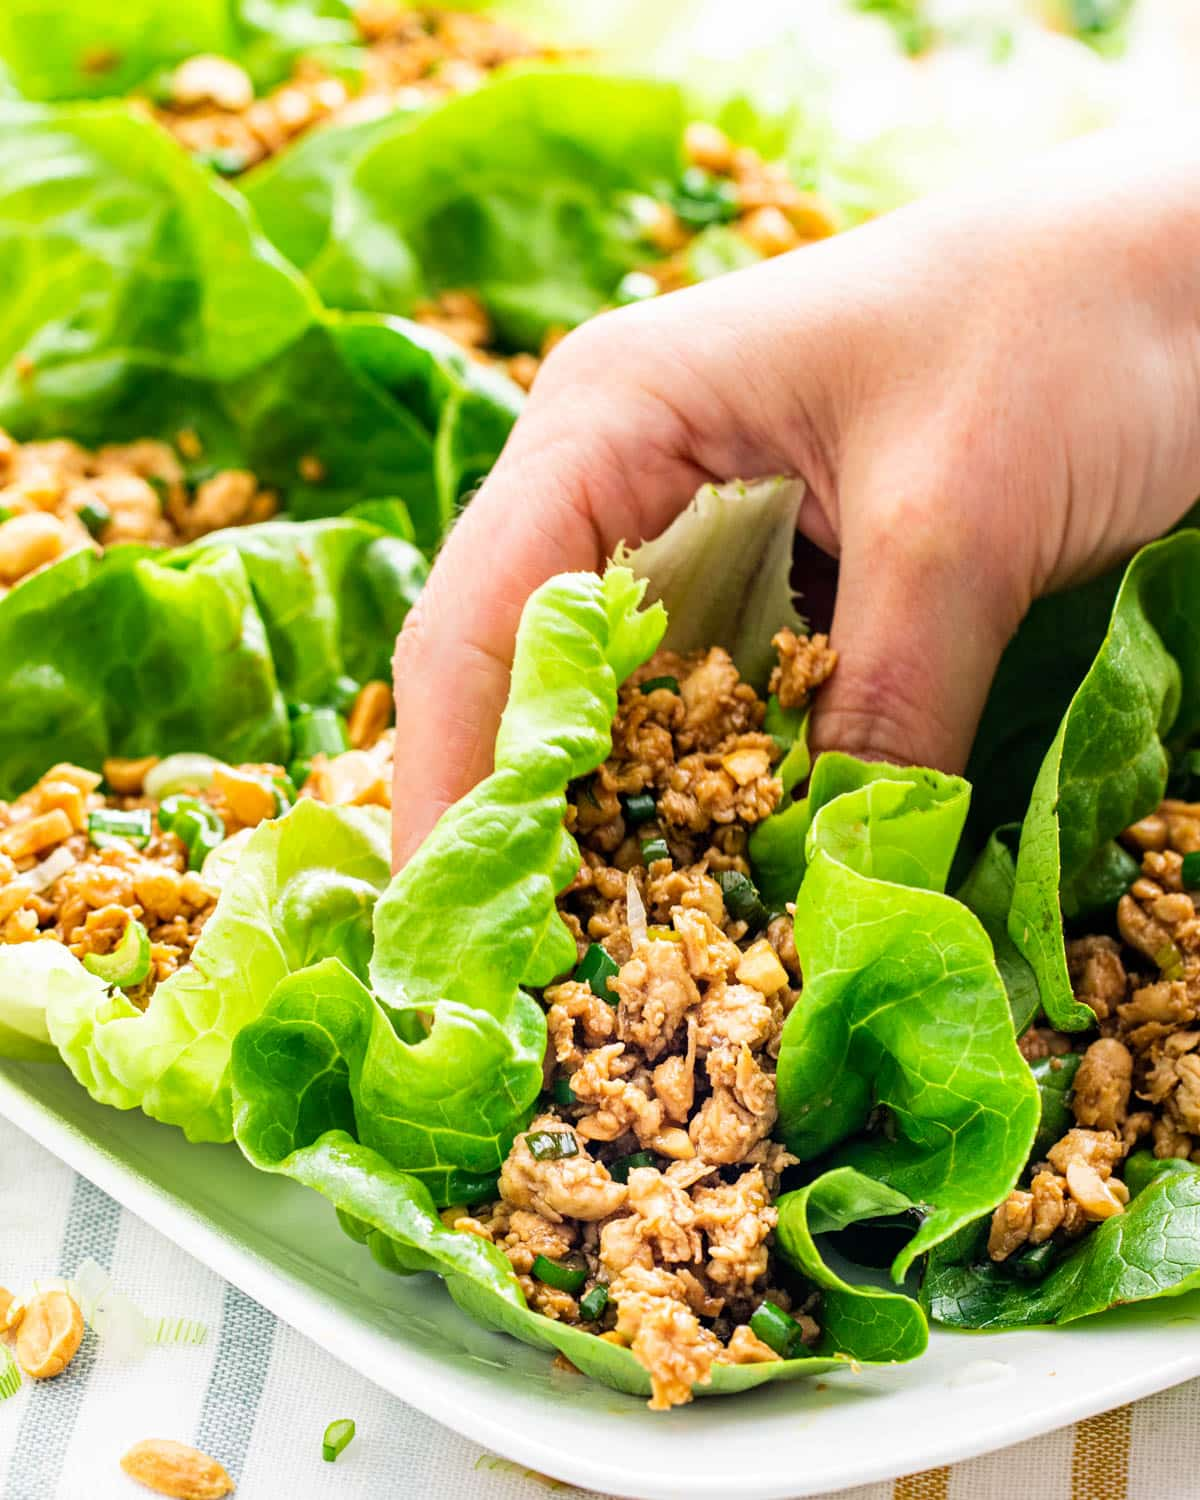 a hand holding a lettuce wrap  over a platter with other lettuce wraps